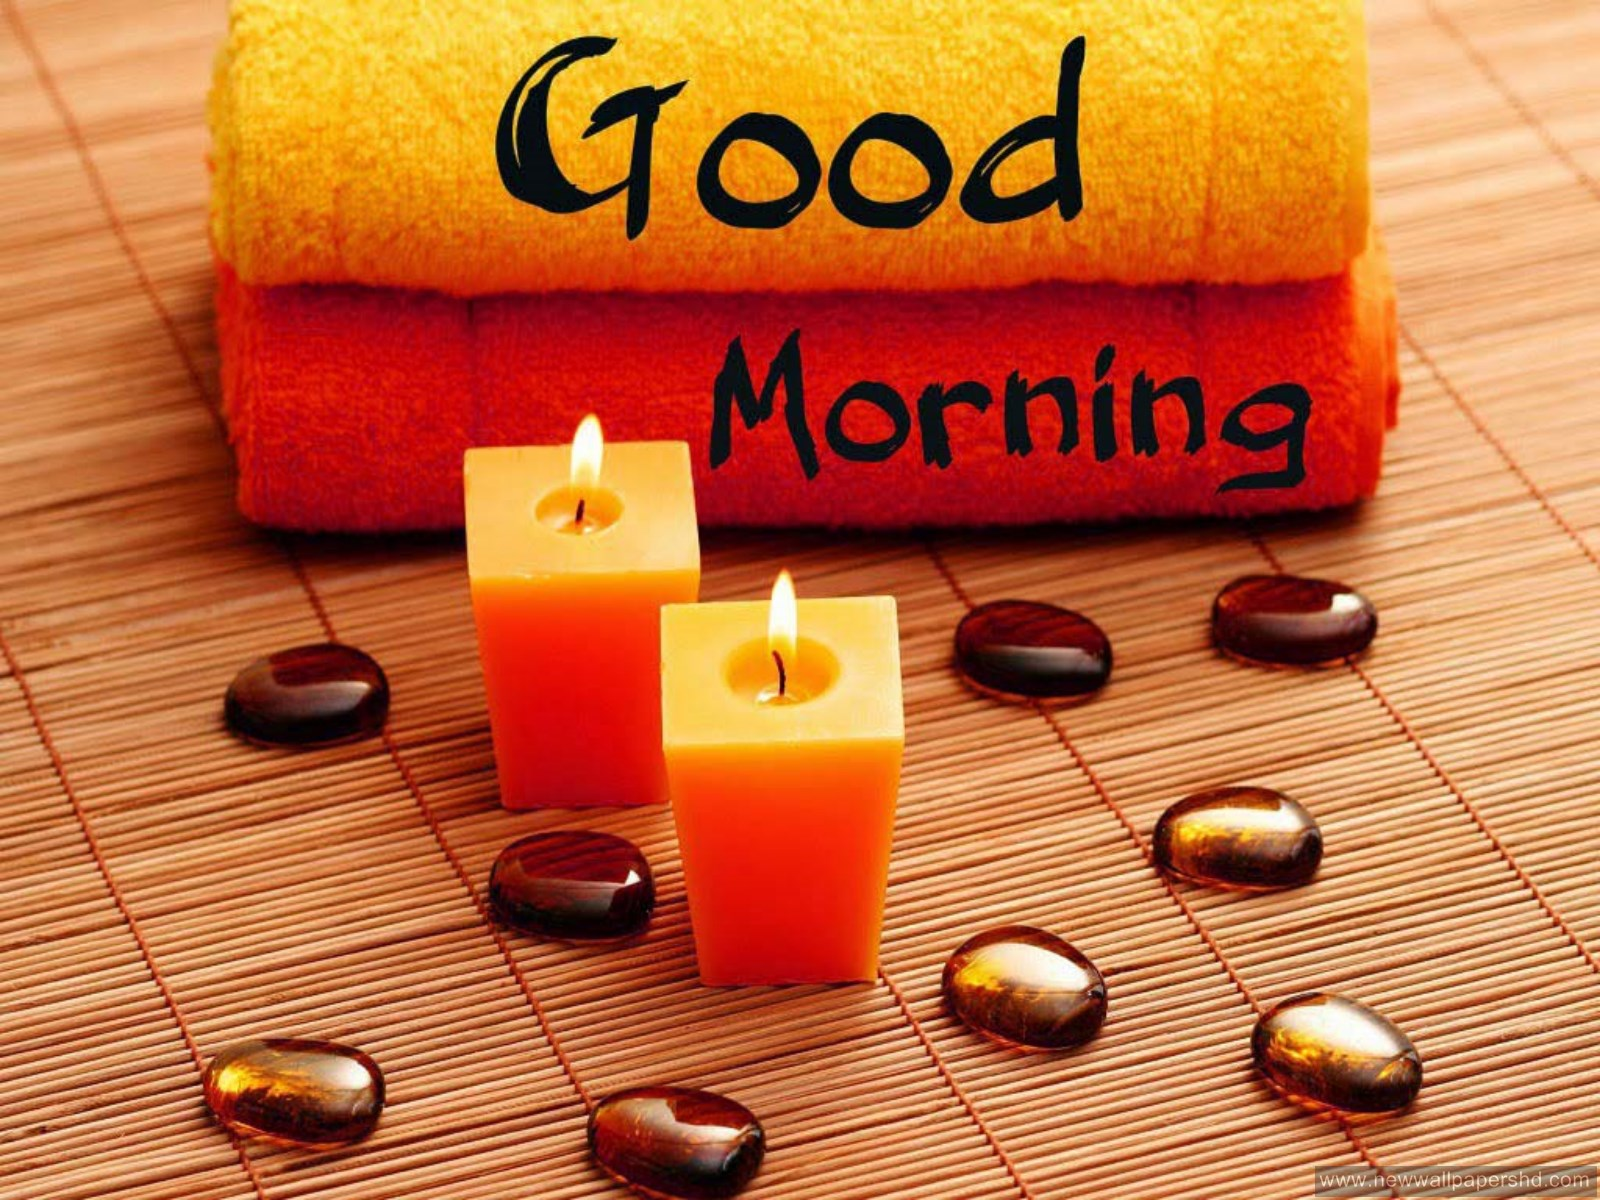 Good morning best wish wallpaper